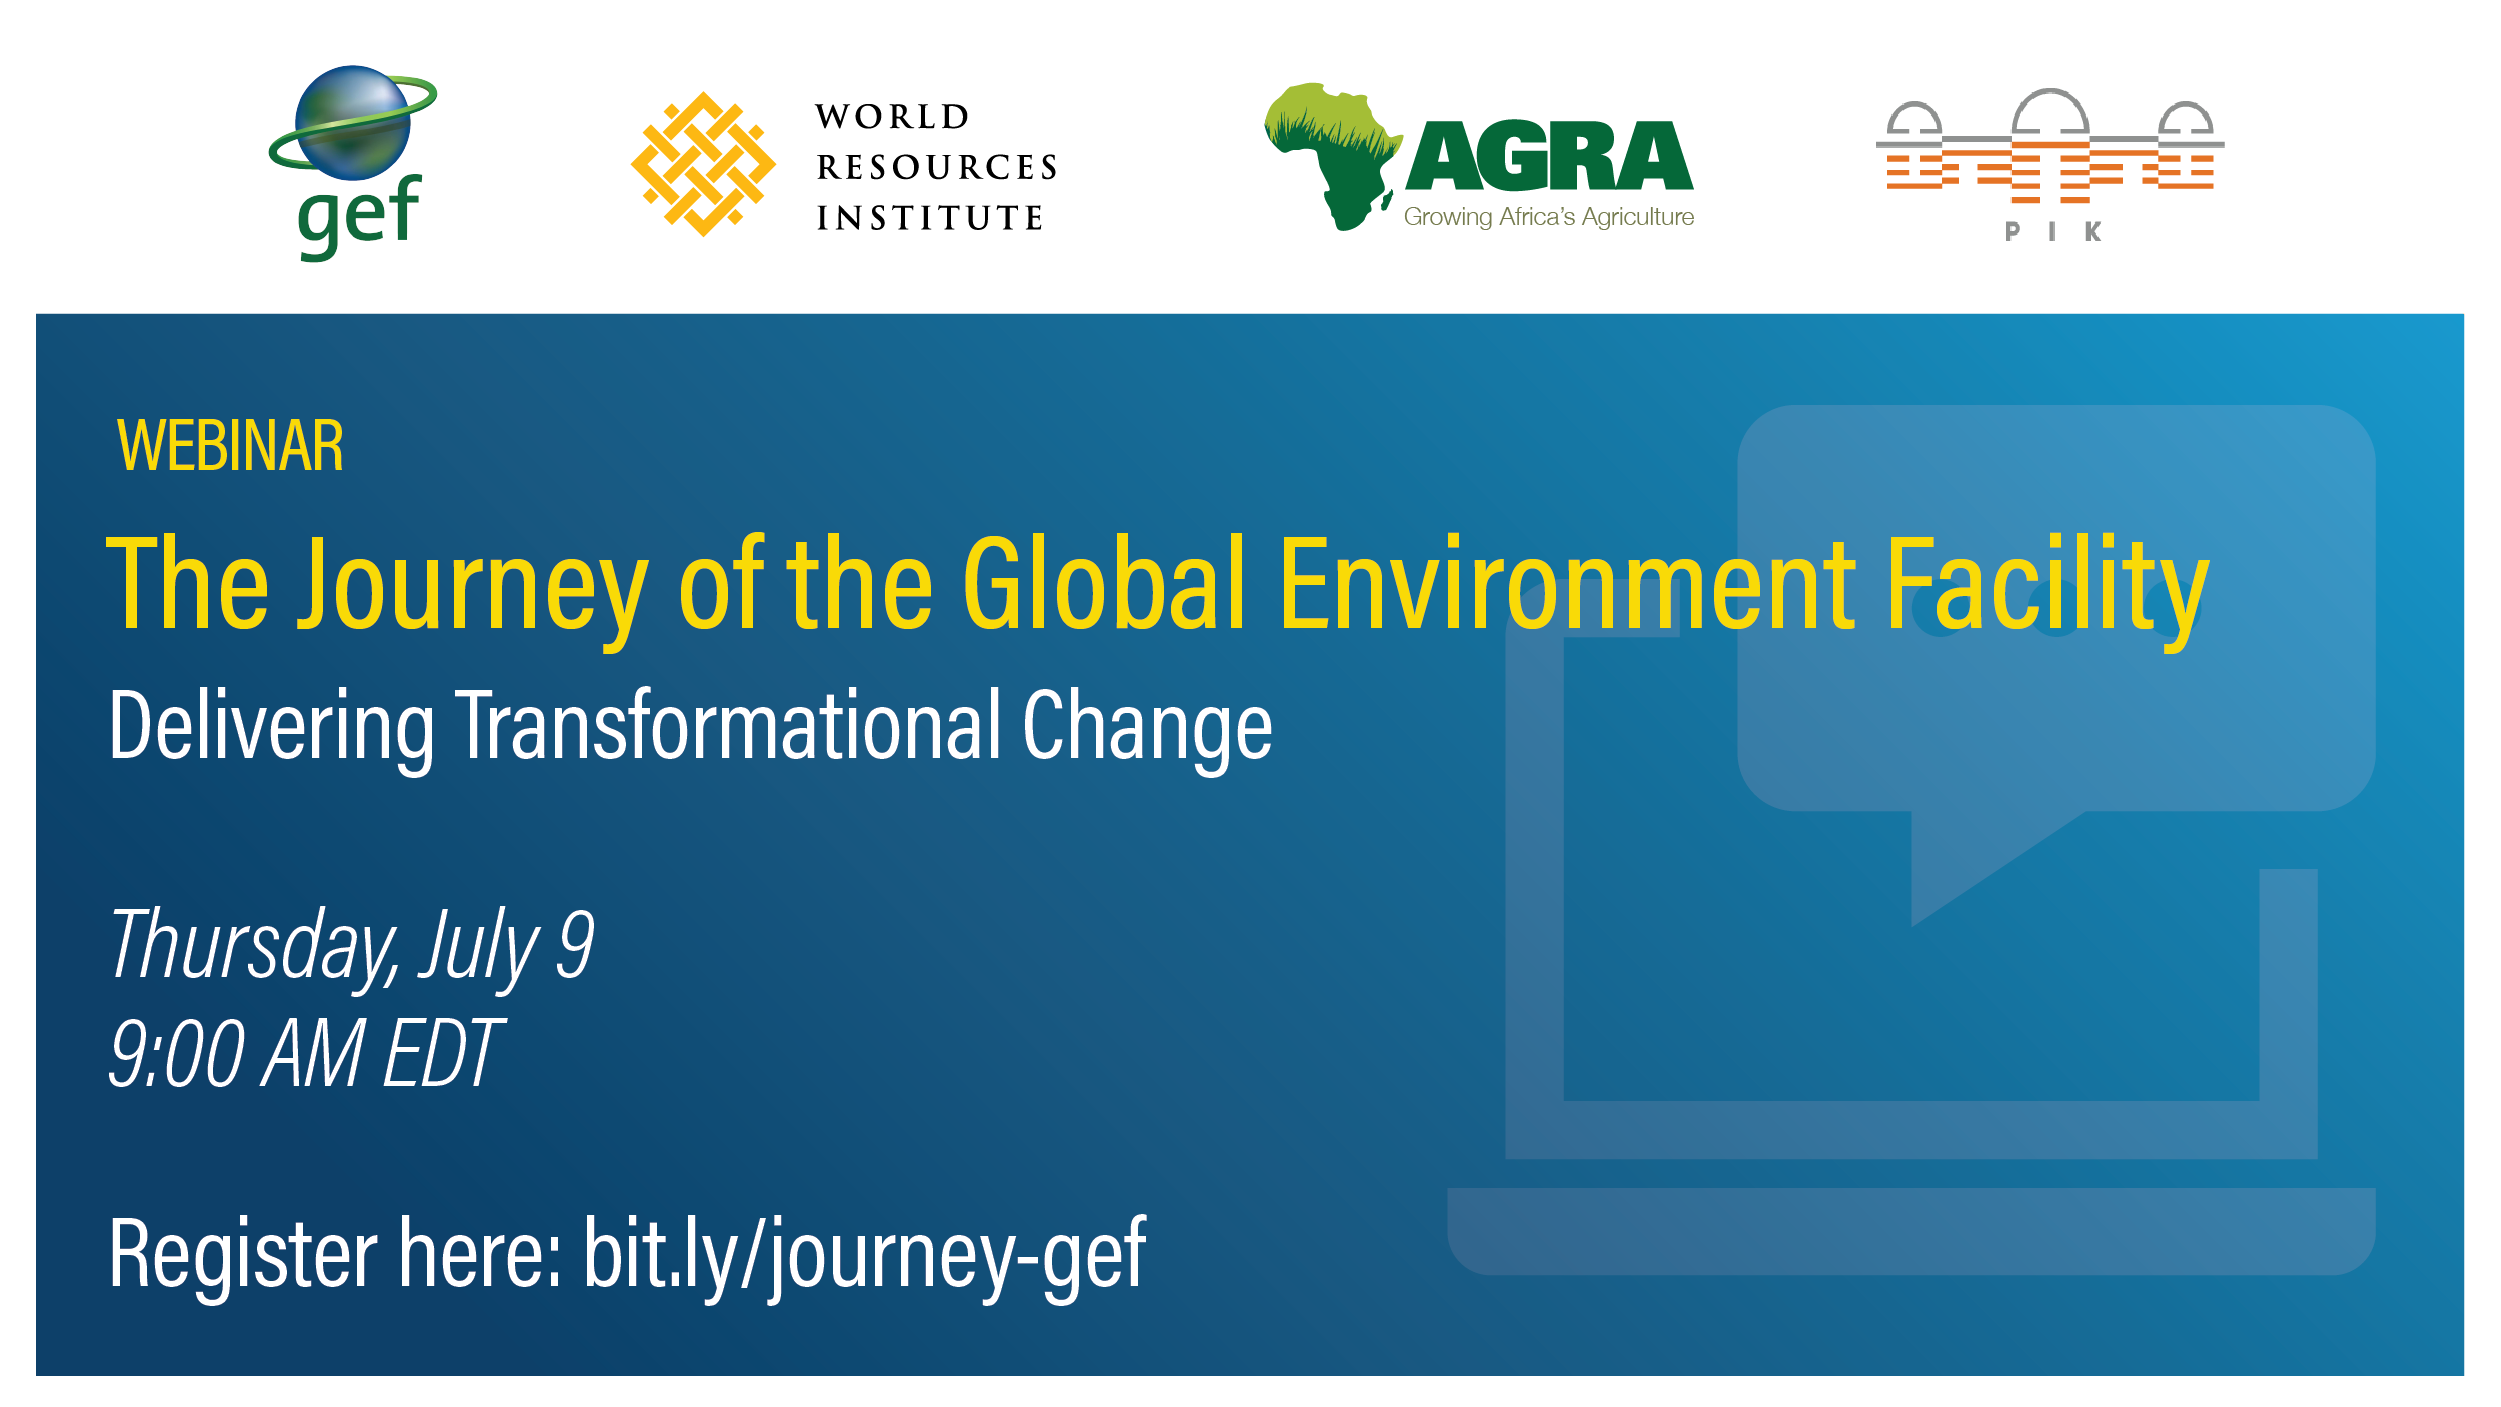 Webinar: The Journey of the Global Environment Facility: Delivering Transformational Change